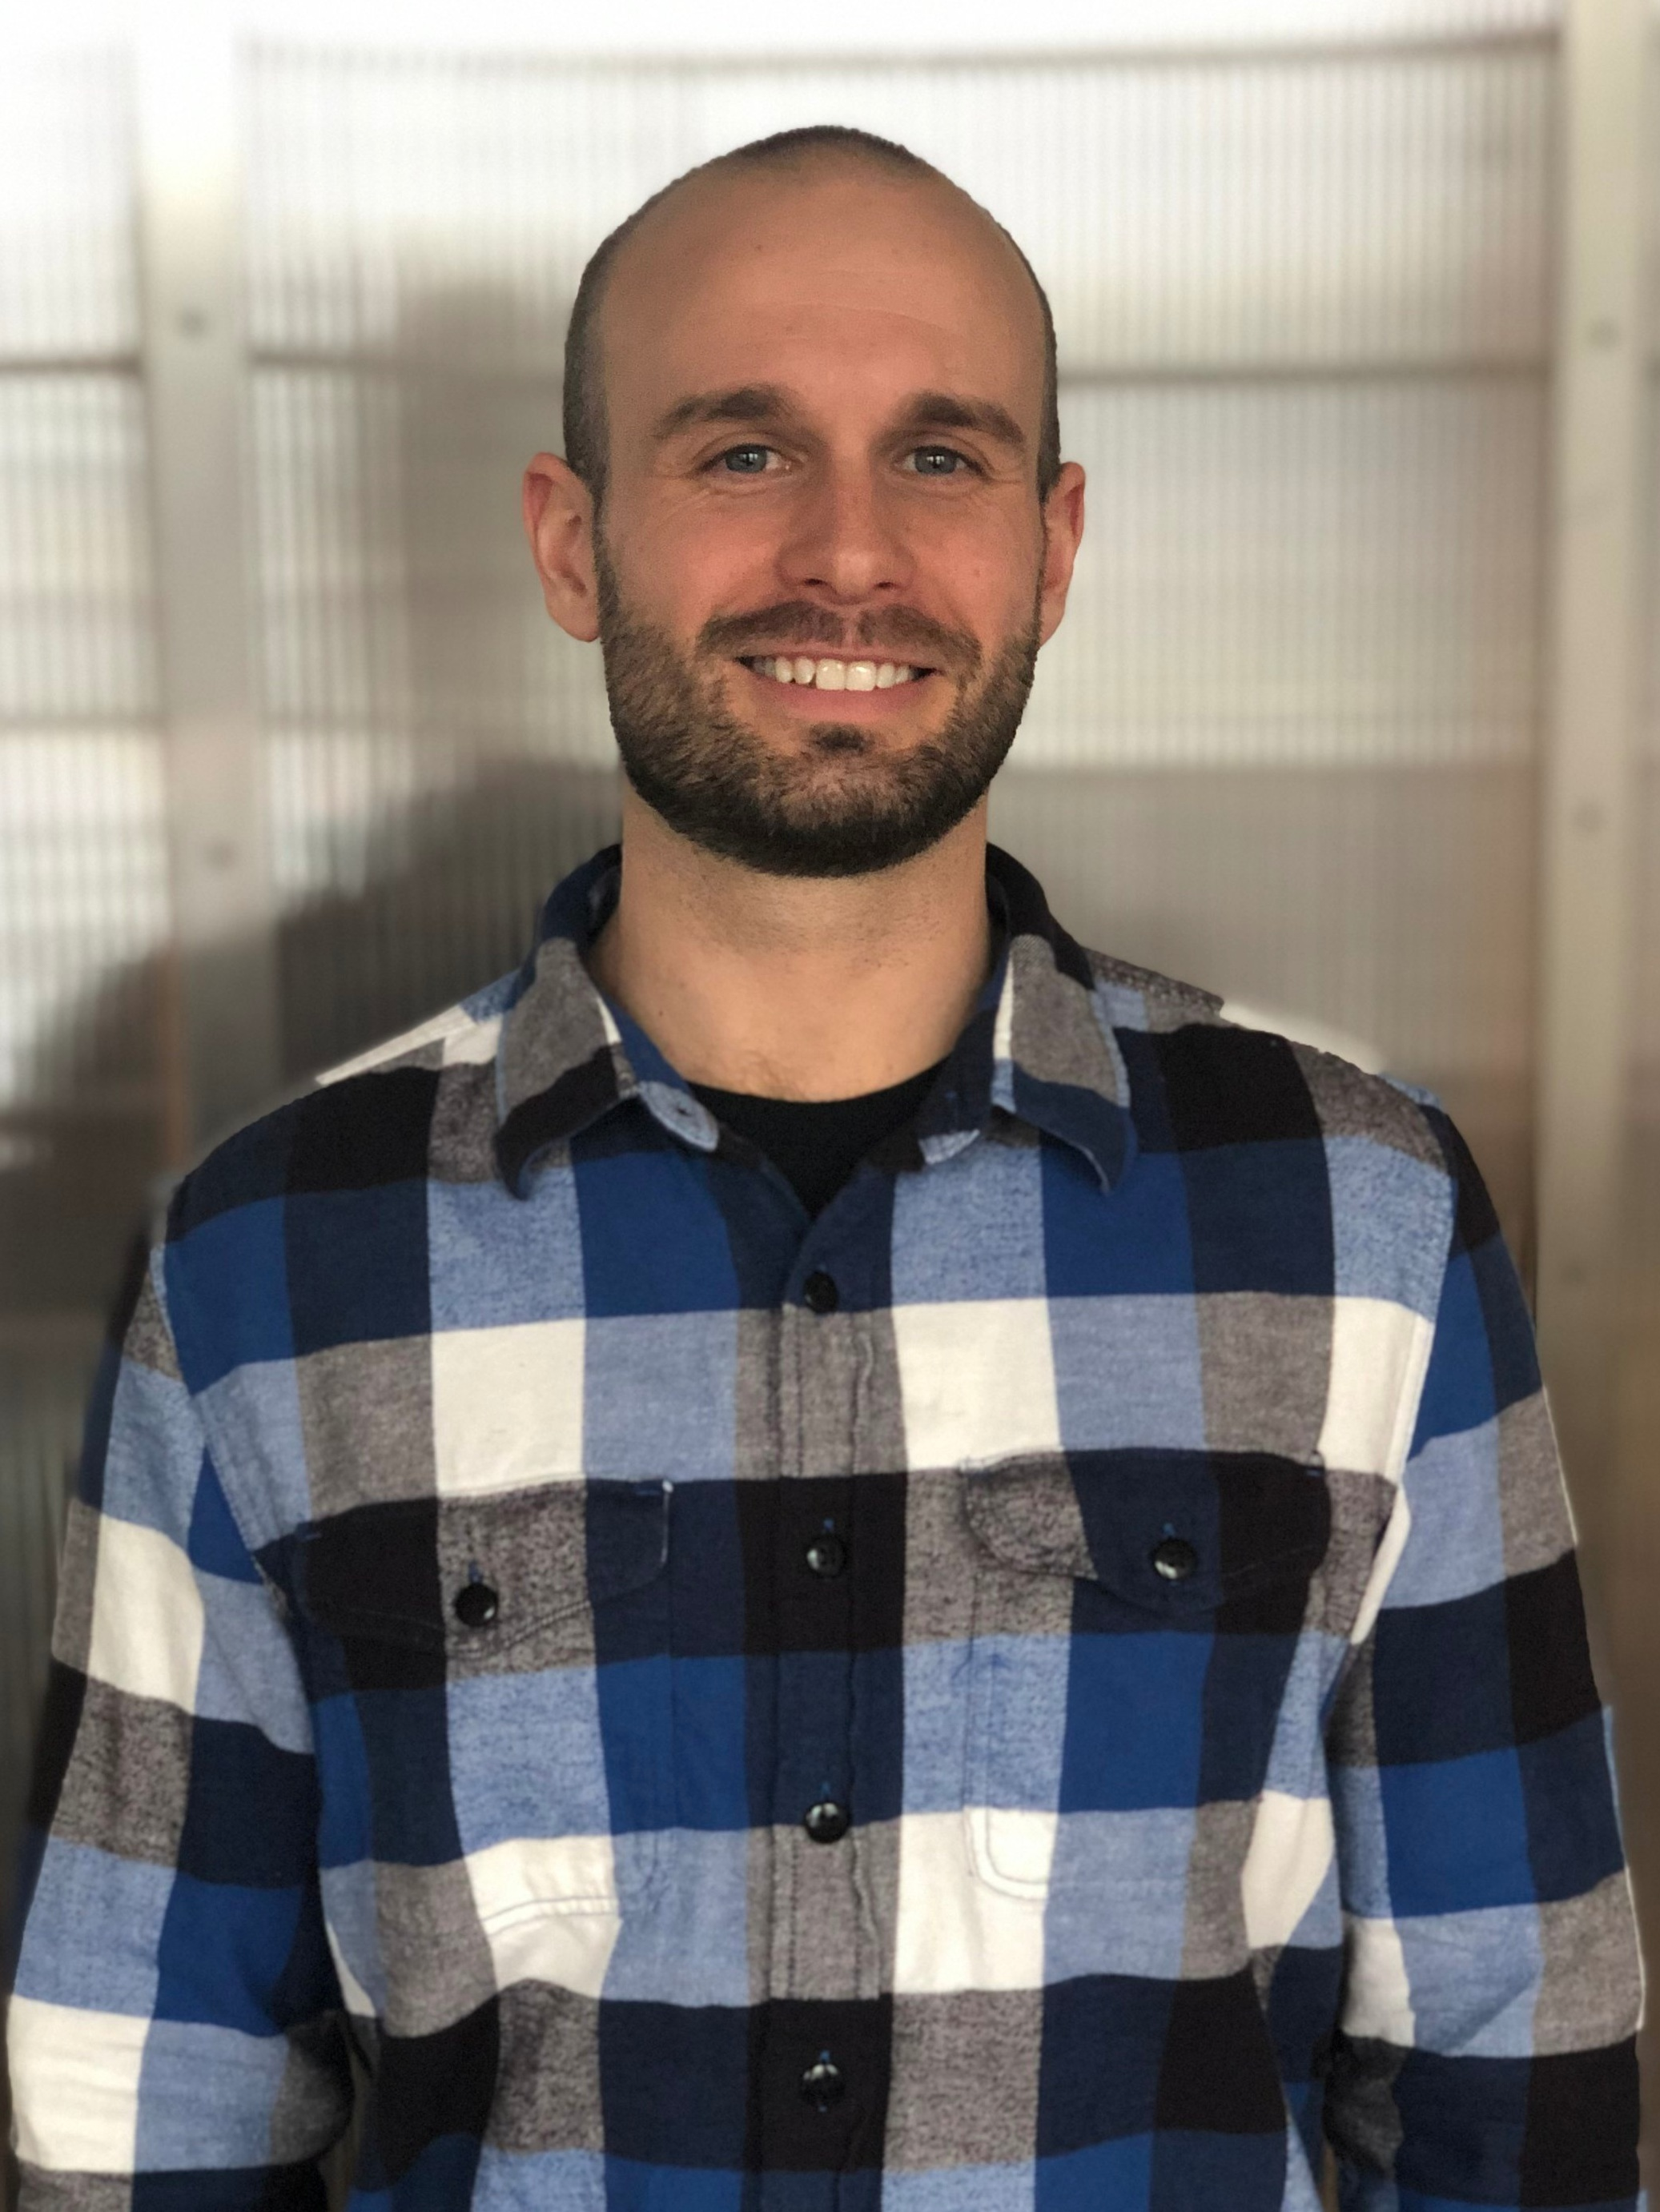 Chris joined the Customer Success team in October of 2018 and brought along 11 years of Technical Support and Project Management experience. A graduate from James Madison University with a Computer Information Systems Degree, he enjoys learning new technologies and finding creative ways to put them to good use. He currently live in Harrisonburg, VA with his wife.